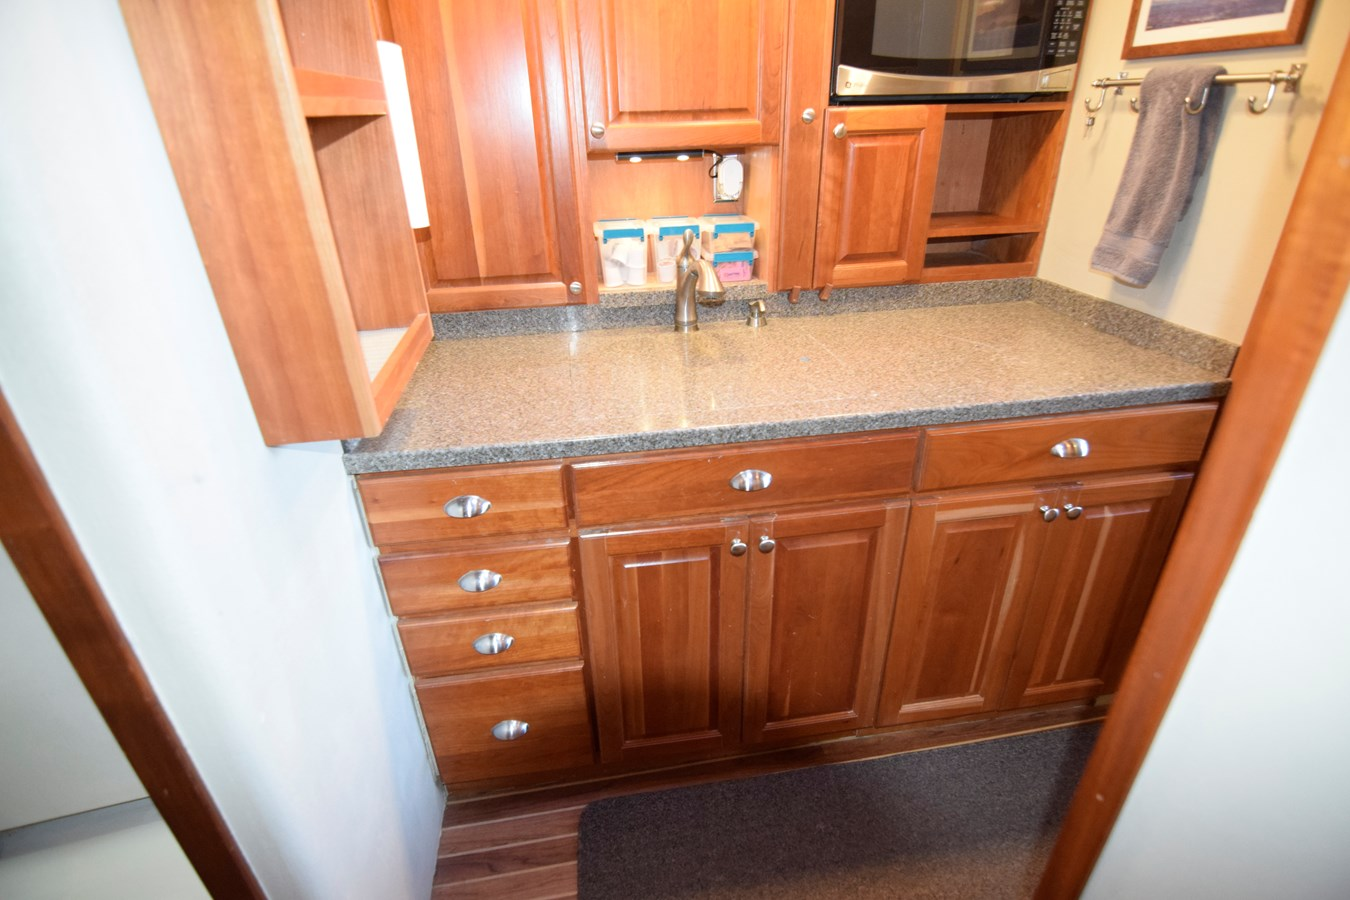 51 - 46 HATTERAS For Sale